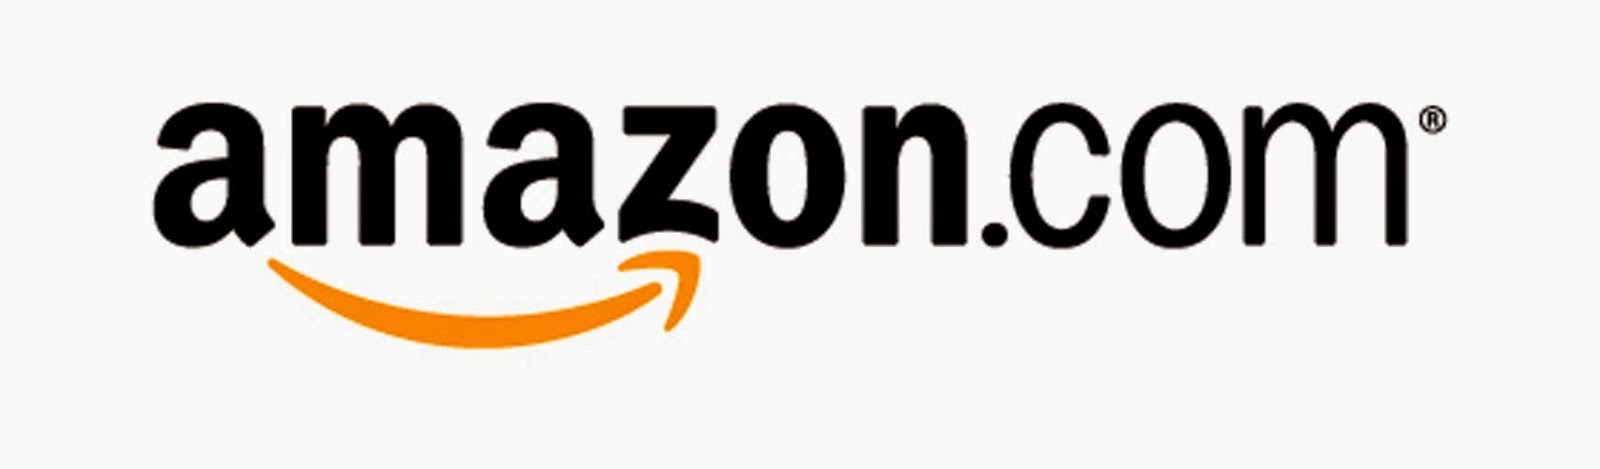 How to Get Free Stuff From Amazon.com : eAskme